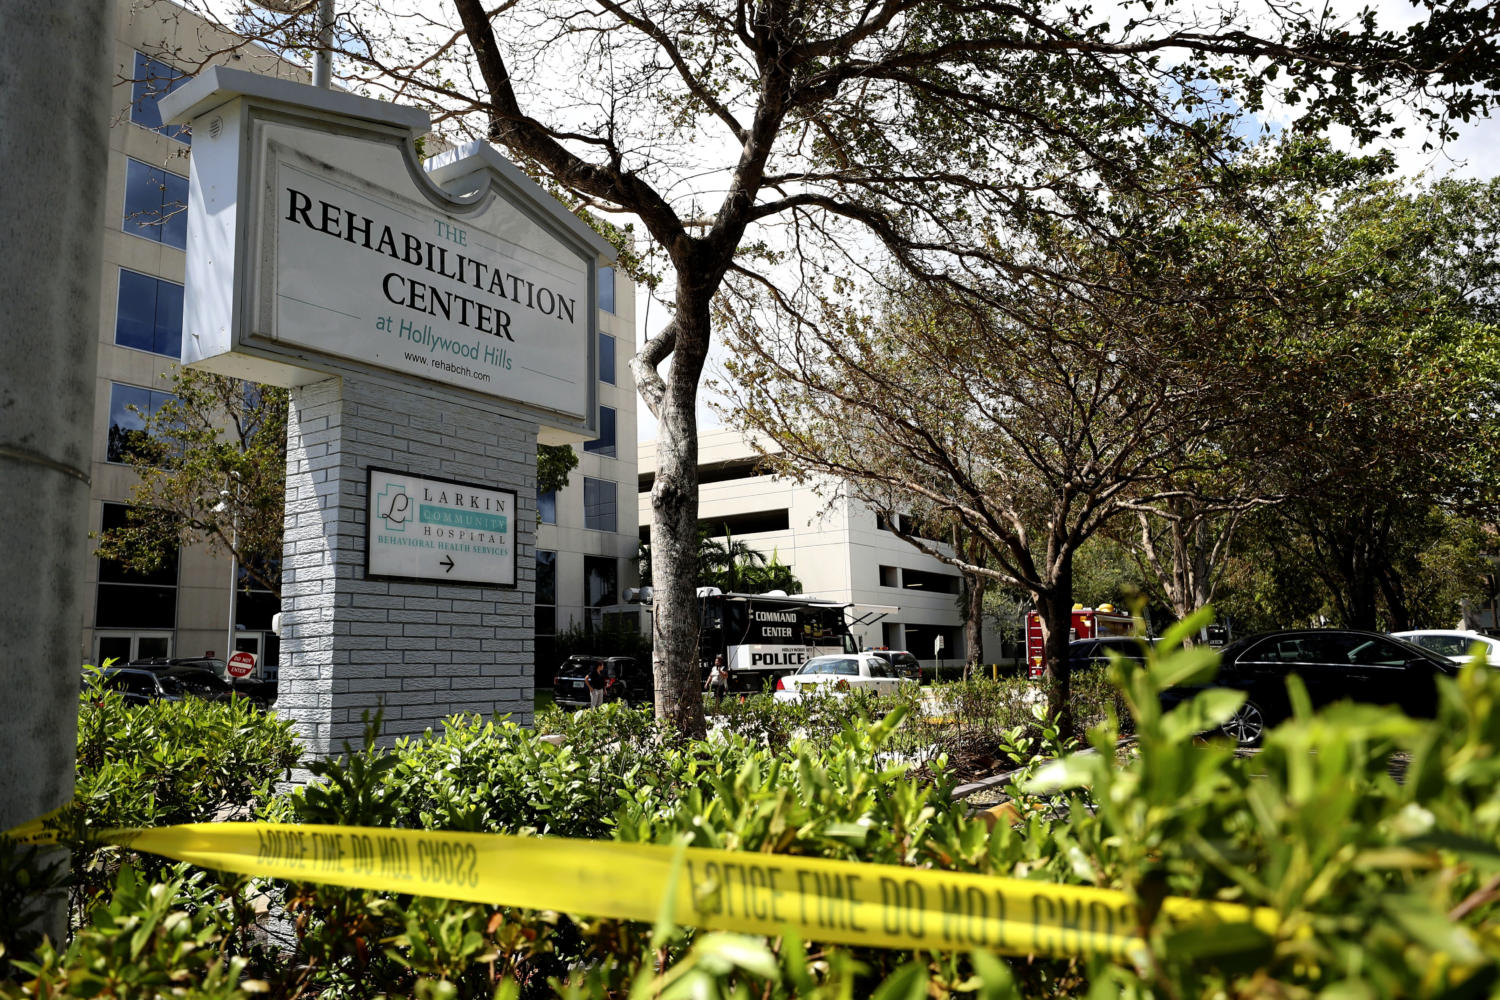 Police surround the Rehabilitation Center in Hollywood Hills, Fla., which had no air conditioning after Hurricane Irma knocked out power, Wednesday, Sept. 13, 2017. Several patients at the sweltering nursing home died in Hurricane Irmas aftermath, raising fears Wednesday about the safety of Floridas 4 million senior citizens amid widespread power outages that could go on for days. (John McCall/South Florida Sun-Sentinel via AP)